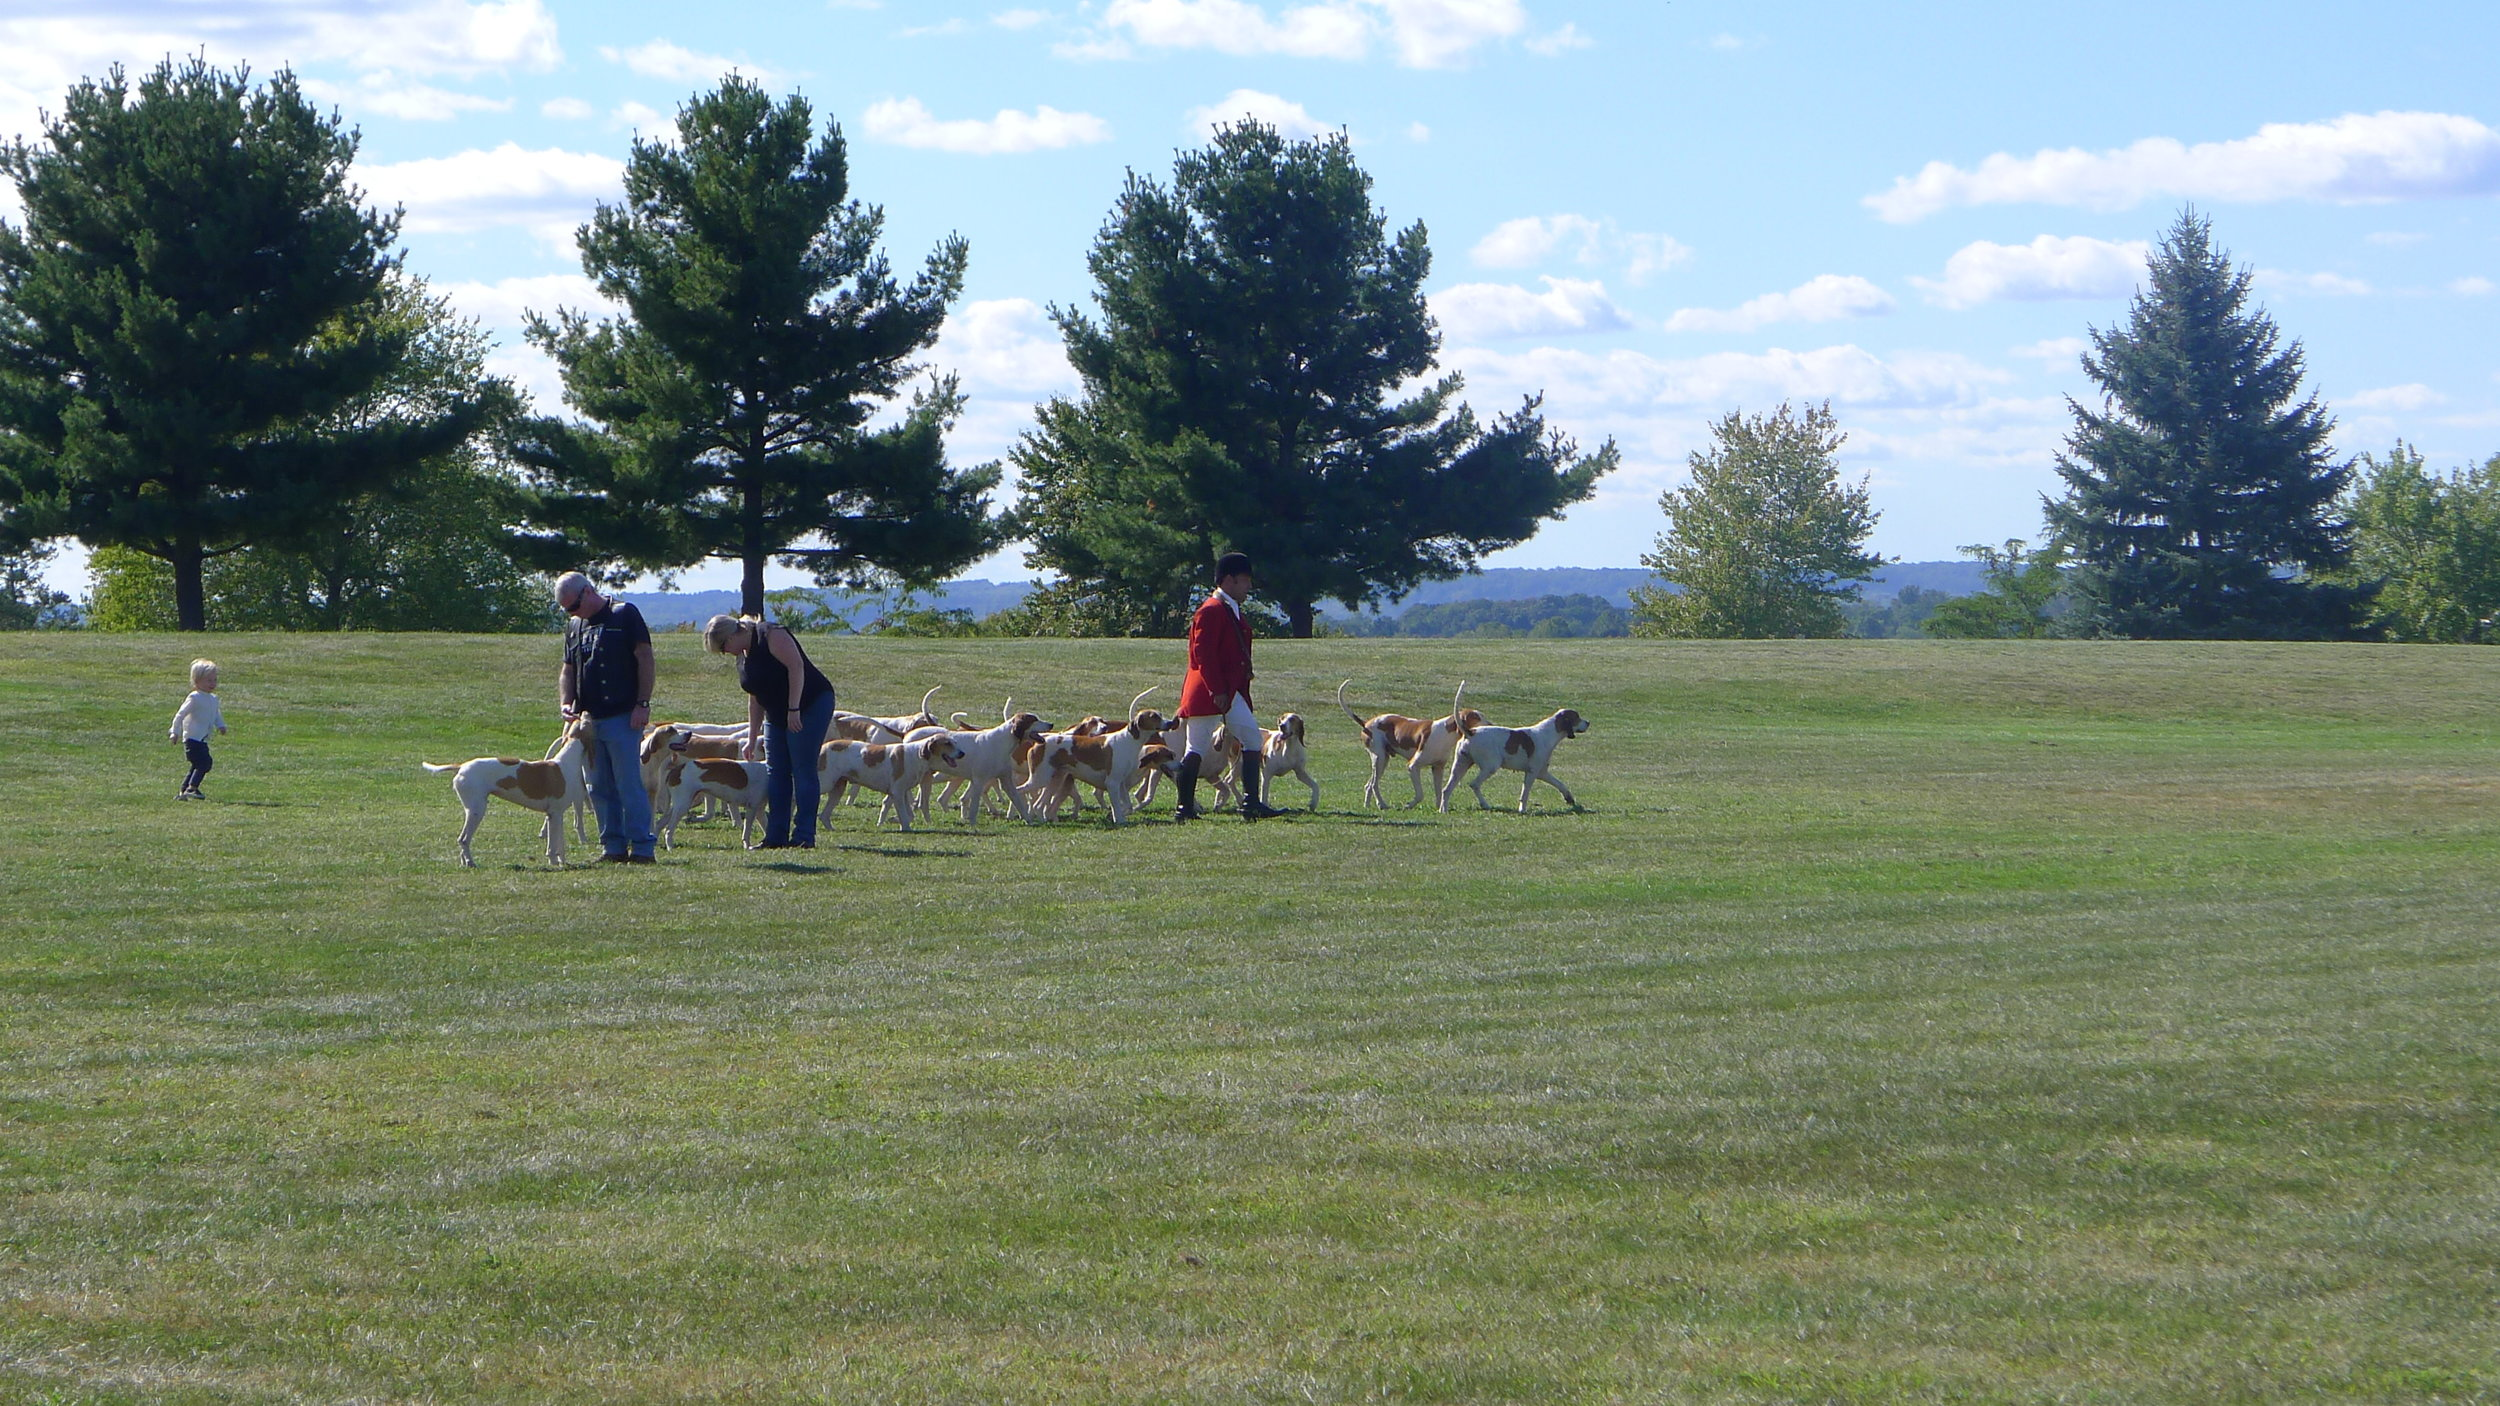 The hounds get set to run